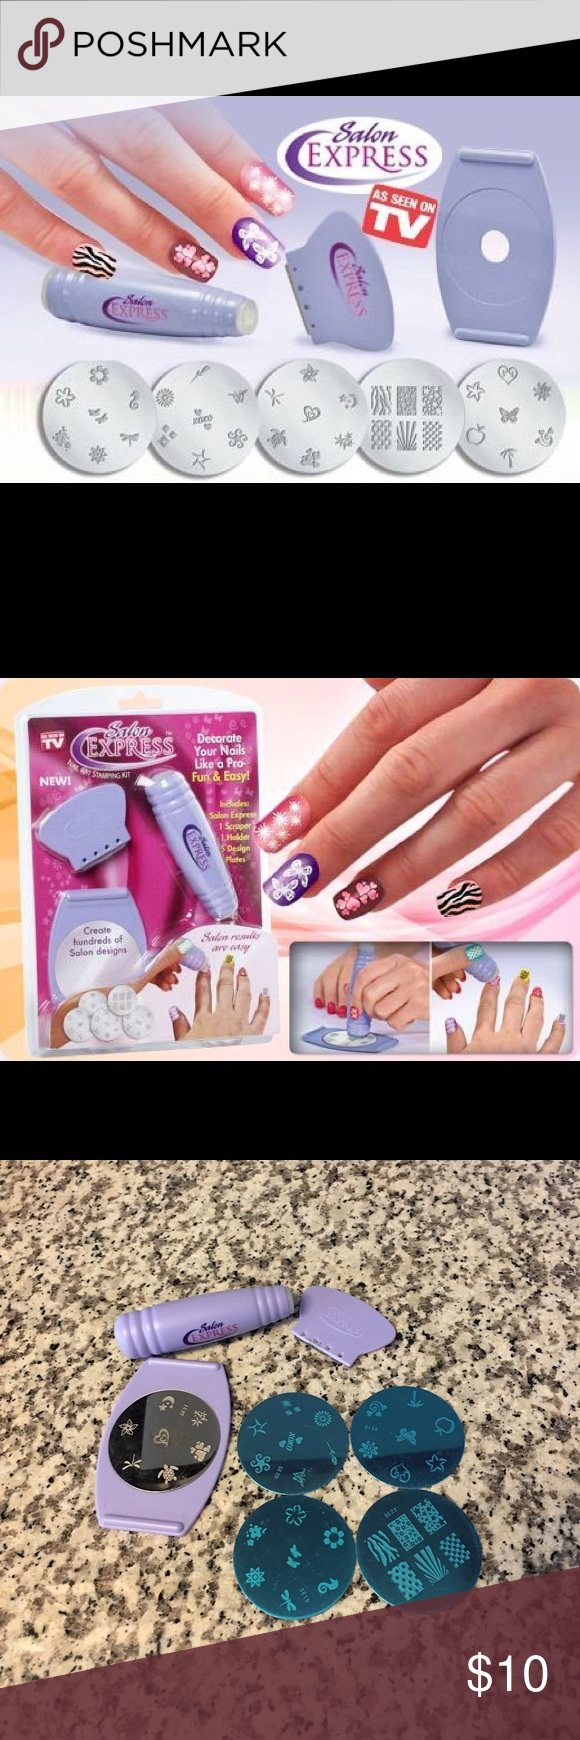 Sold Salon Express Nail Art Kit Pinterest Express Nails